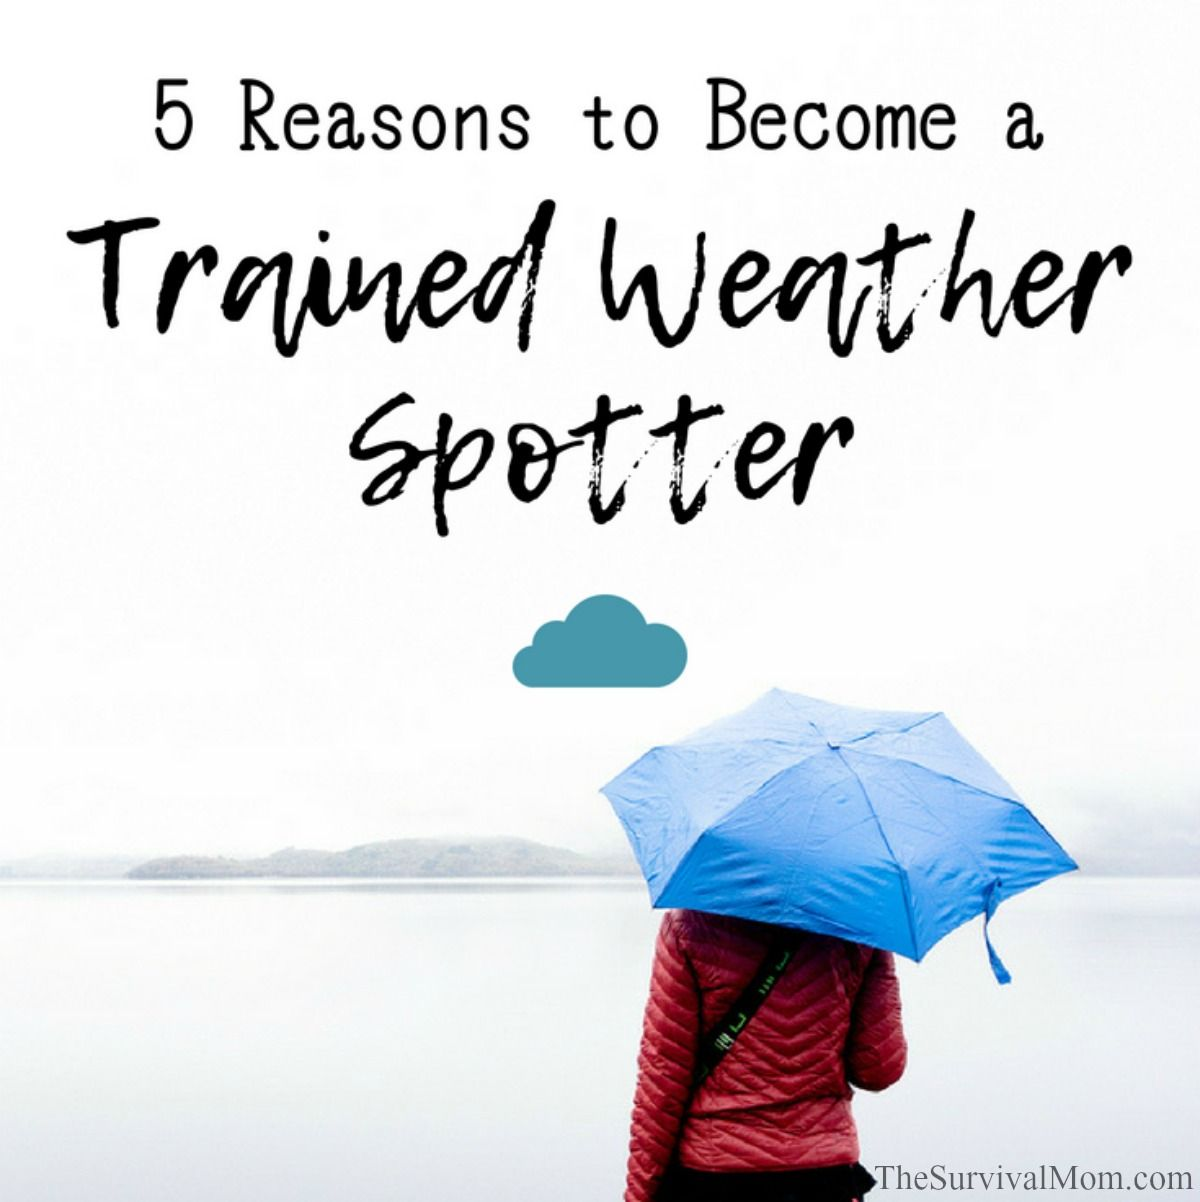 trained weather spotter, trained weather watcher, how to become a trained weather spotter, storm spotter program, skycan program